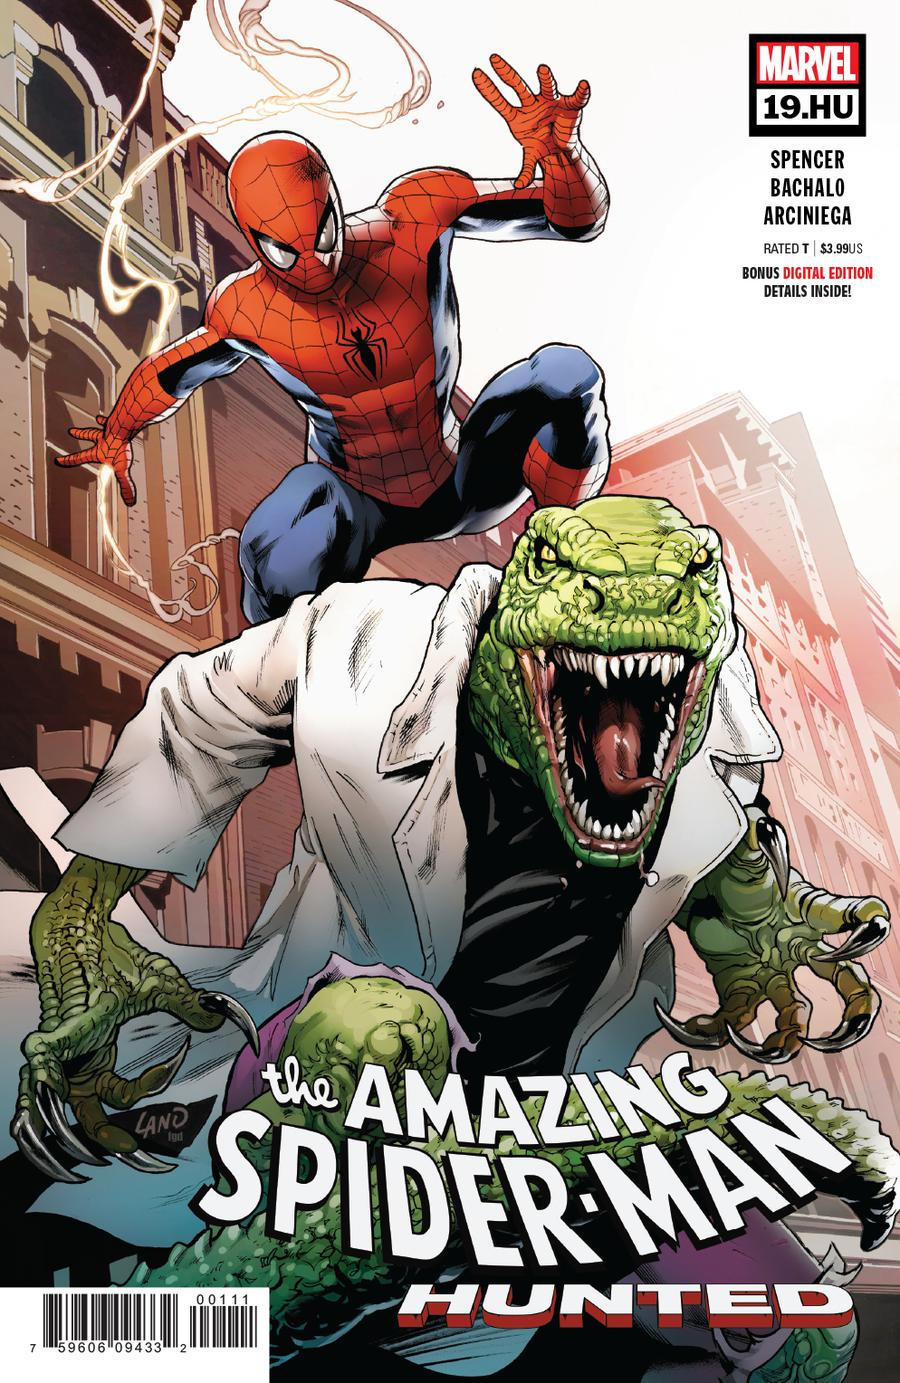 Amazing Spider-Man Vol 5 #19 HU Cover A 1st Ptg